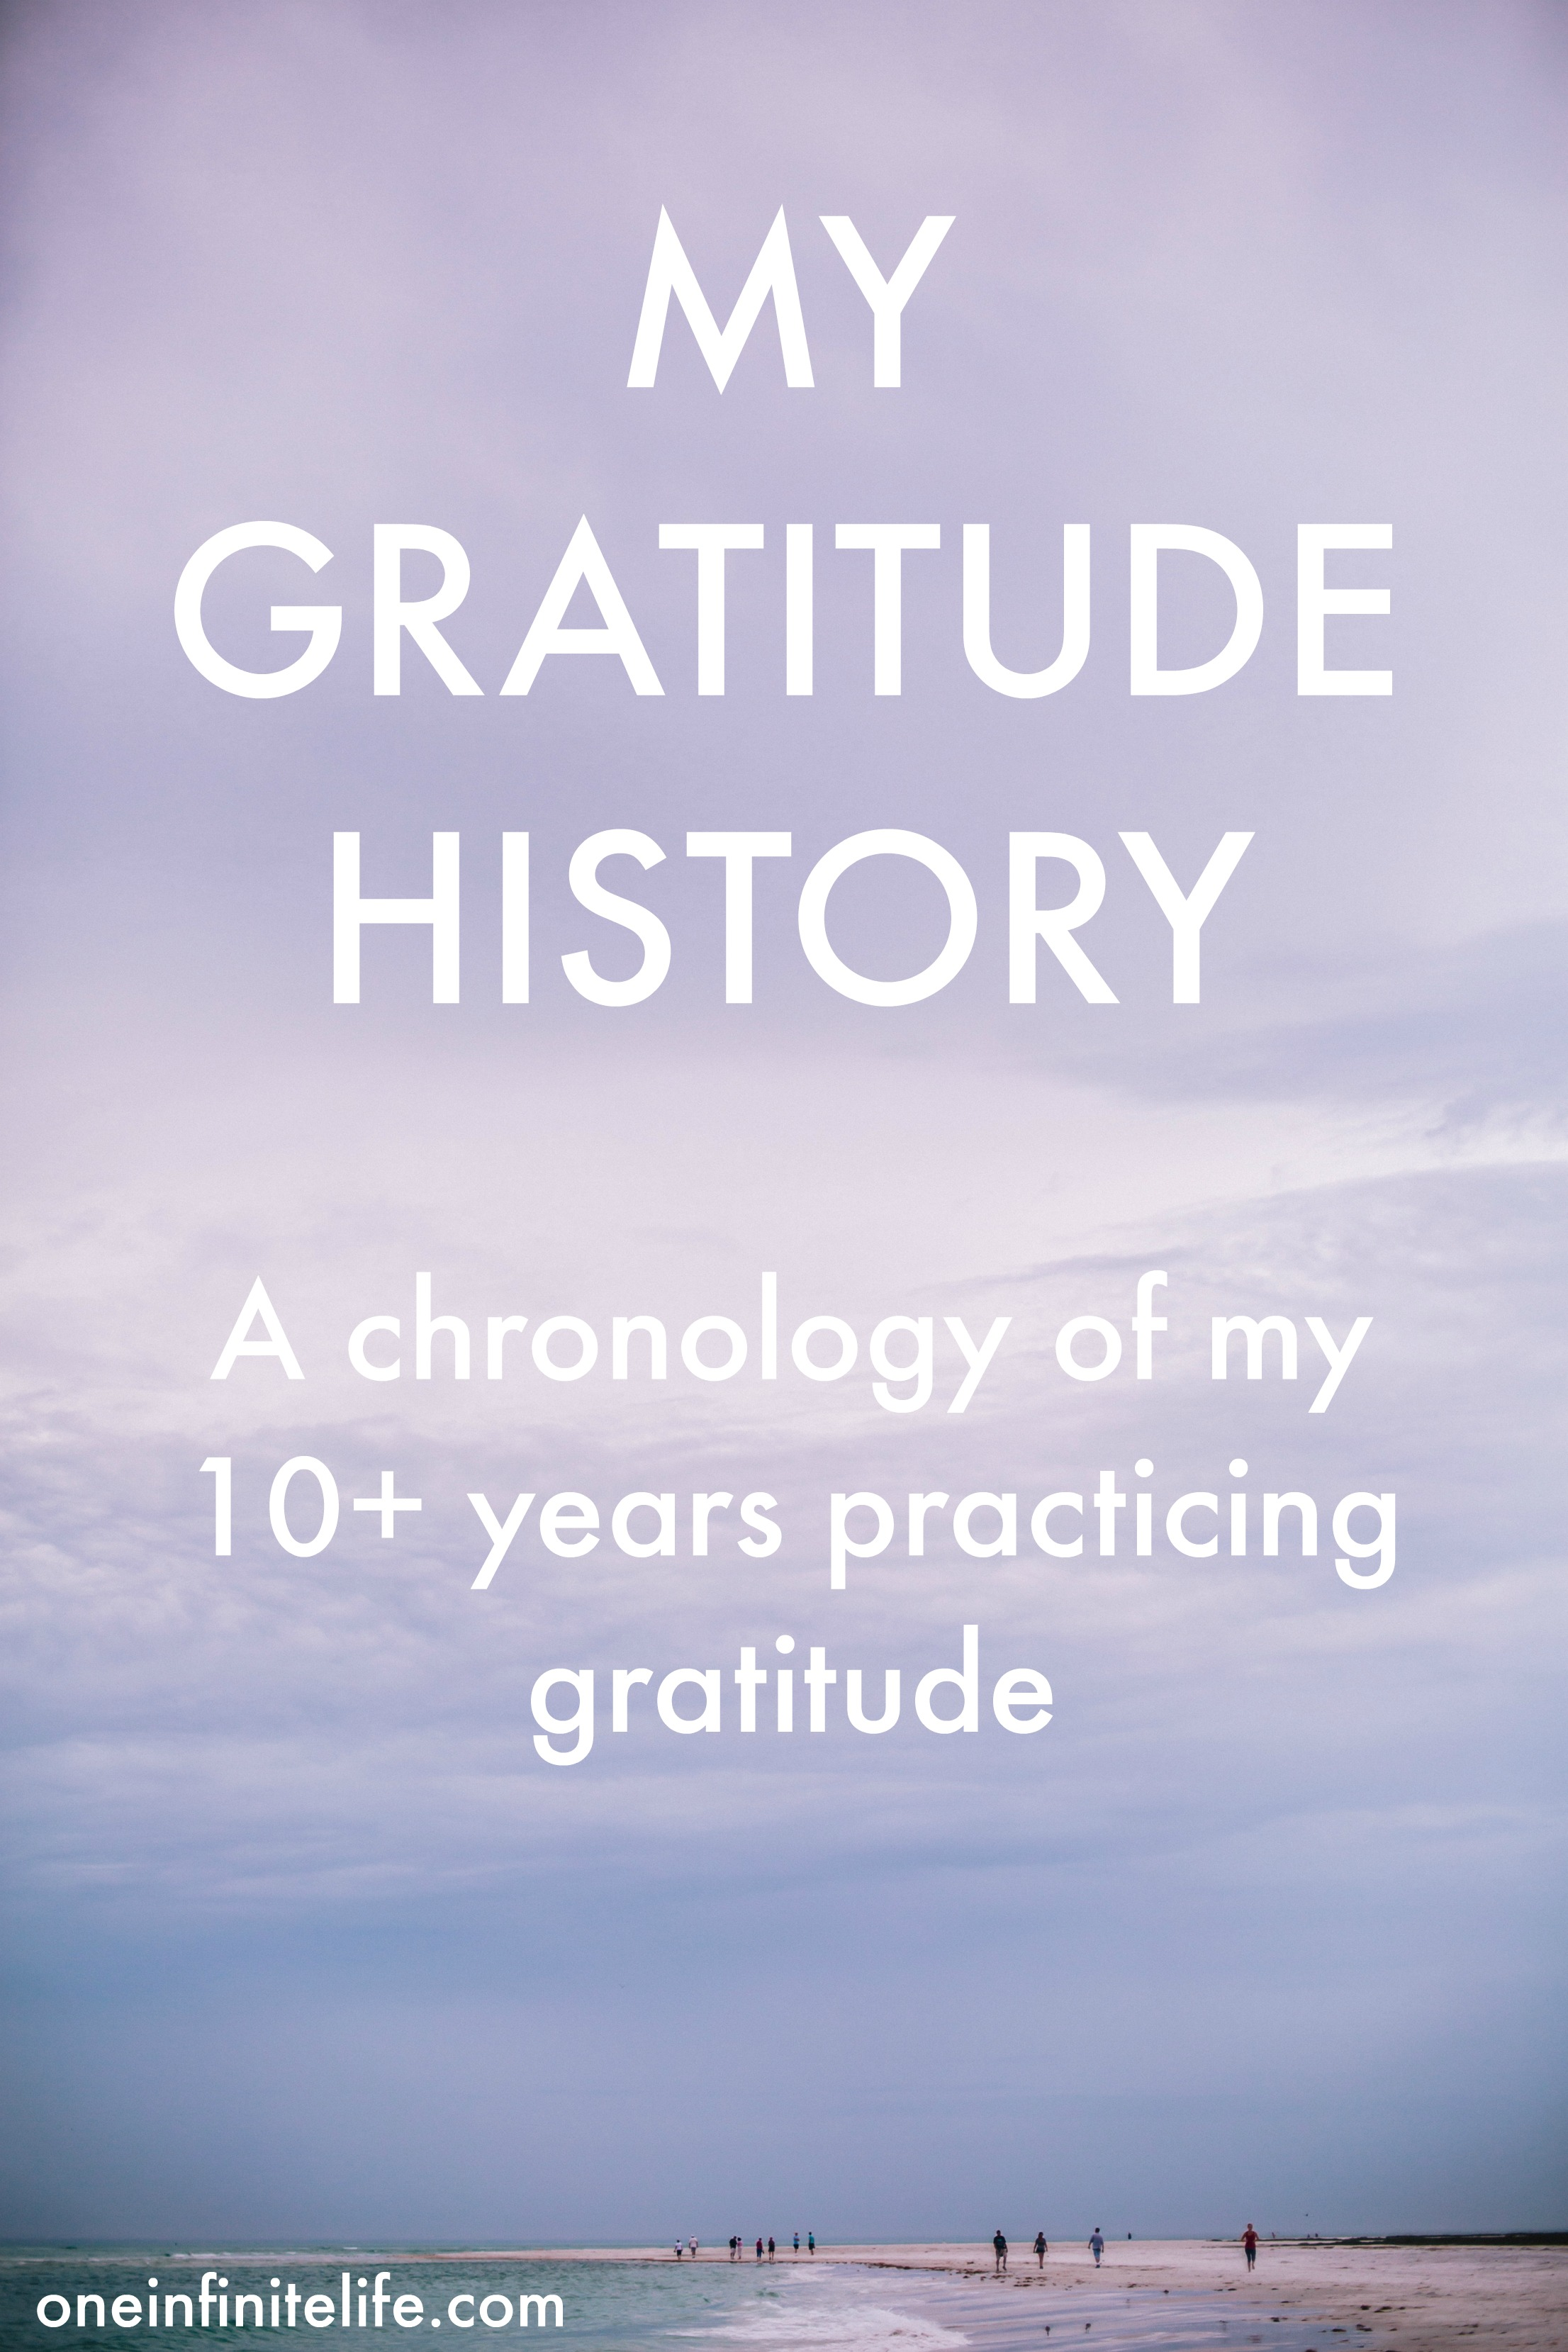 I've been practicing gratitude — with varying levels of devotion — for over a decade now, since I was thirteen years old. It's now been more than 11 years since I was first introduced to this practice. And during that time I've experience how incredibly powerful this practice can be. Here's a lowdown on my gratitude history and a chronology of how gratitude has played a role in my life over the past decade https://oneinfinitelife.com/my-gratitude-history/